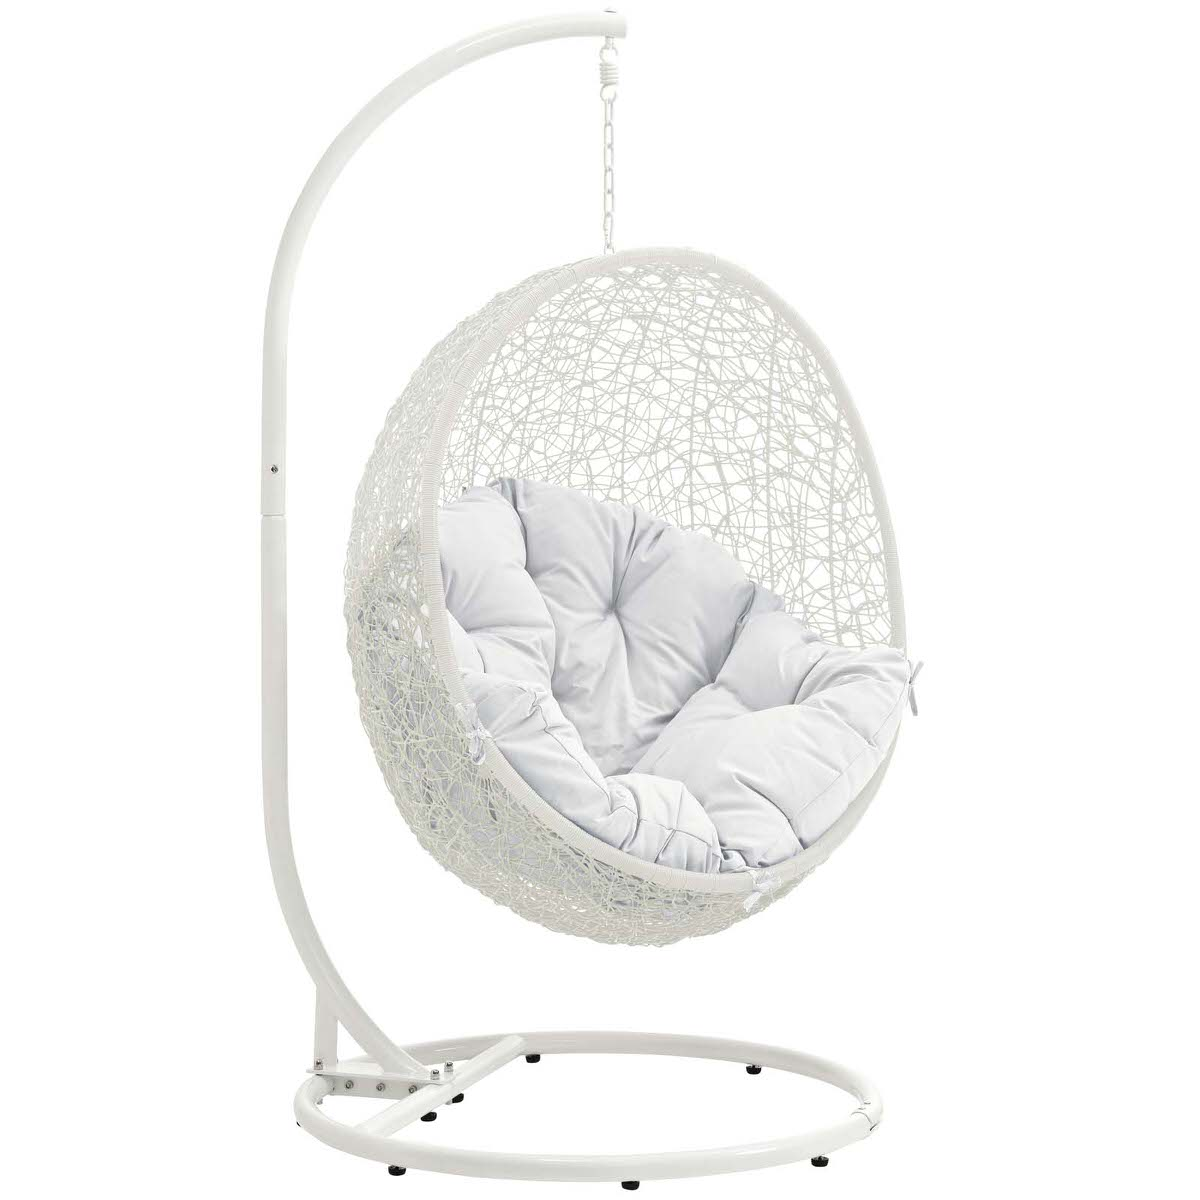 Super Hide Outdoor Patio Swing Chair With Stand White By Modern Living Onthecornerstone Fun Painted Chair Ideas Images Onthecornerstoneorg